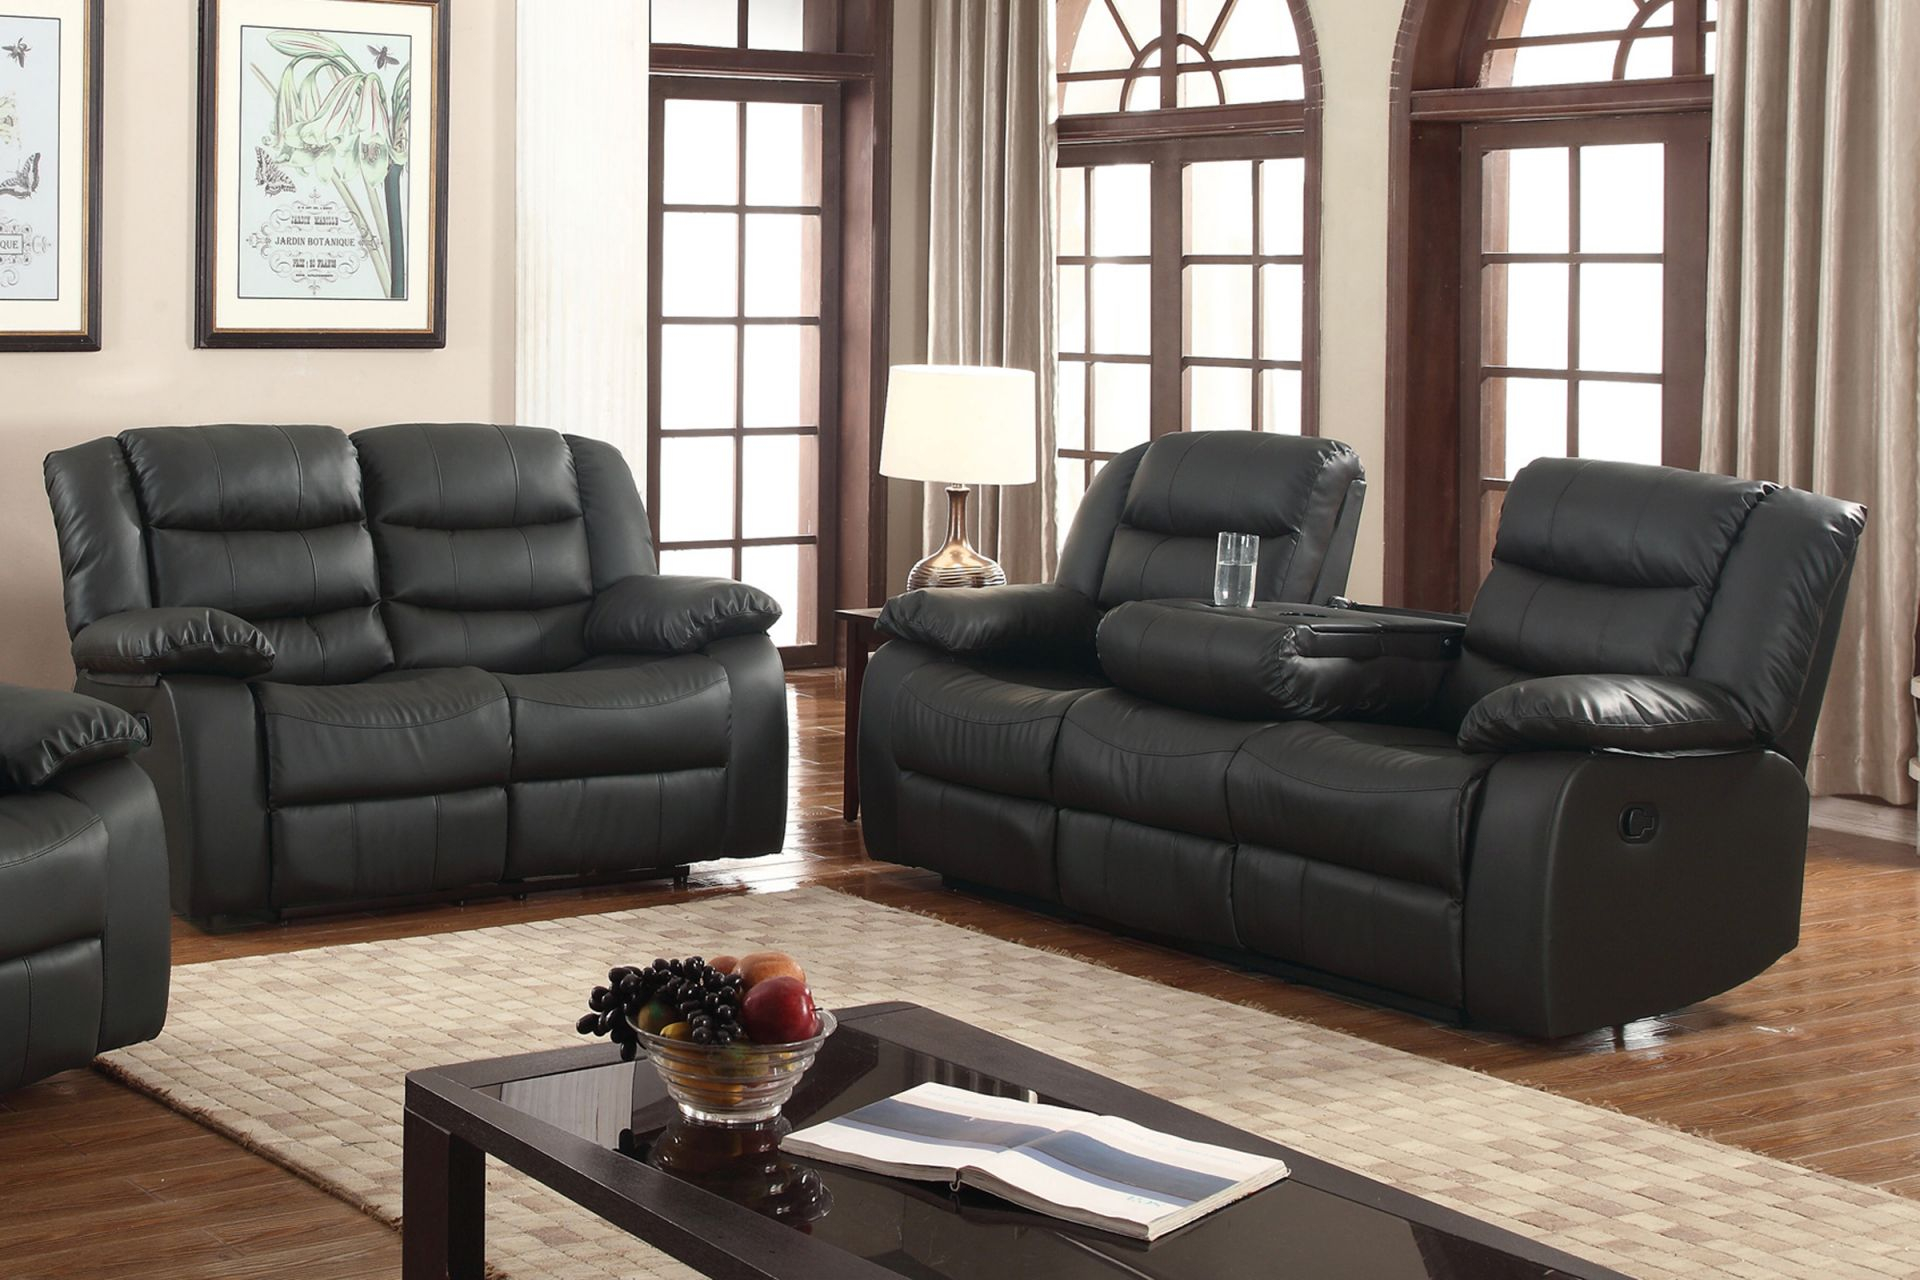 Layla 2 Pc Black Faux Leather Living Room Reclining Sofa And Loveseat Set With Drop-Down Tea Table inside Awesome Leather Living Room Sets